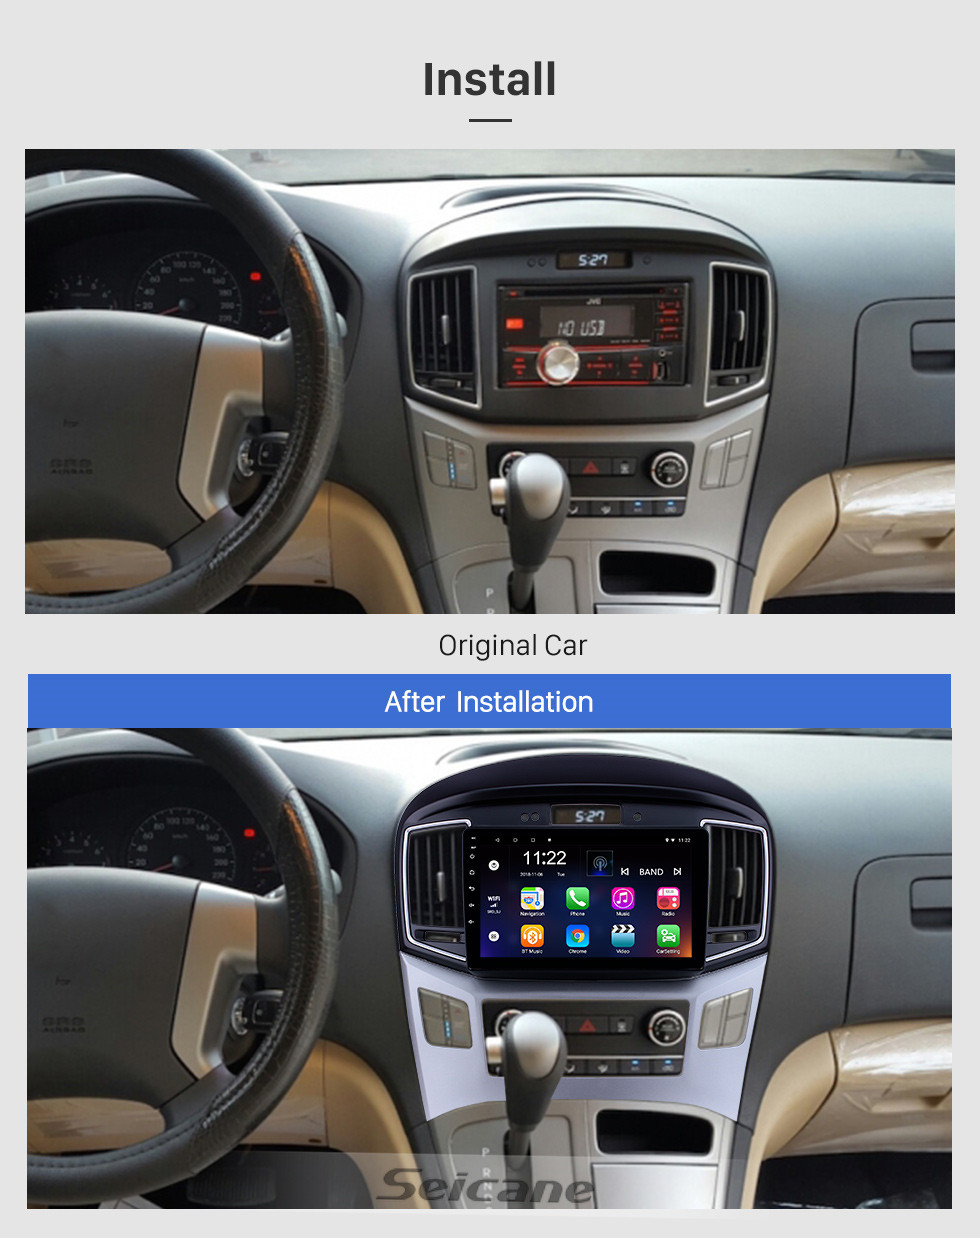 Seicane HD Touchscreen 9 inch Android 10.0 GPS Navigation Radio for 2015 Hyundai Starex H1 with Bluetooth AUX support DVR Carplay